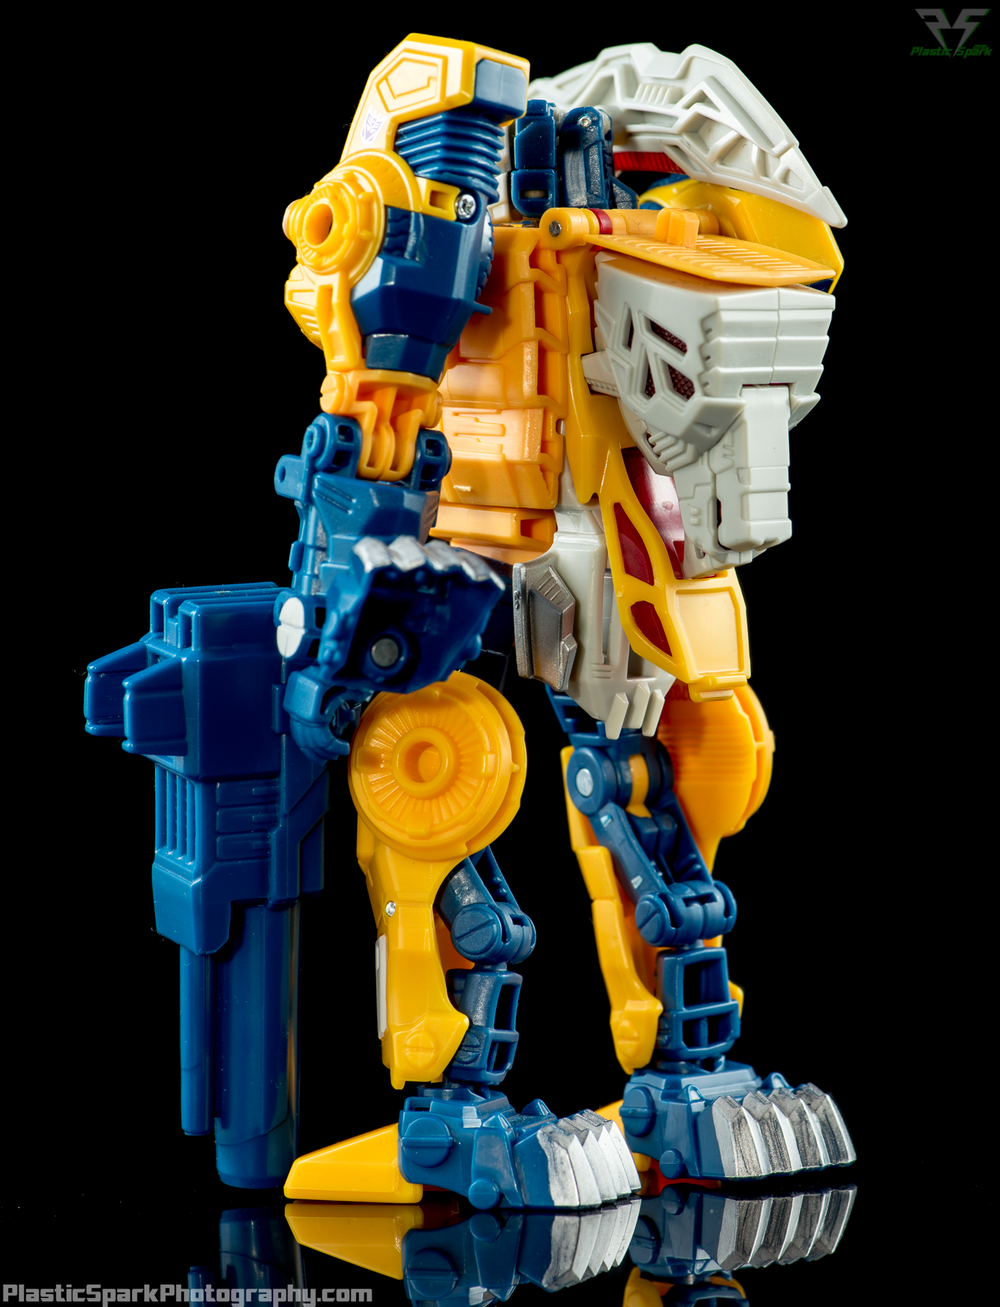 Titans-Return-Weirdwolf-(2-of-11).png